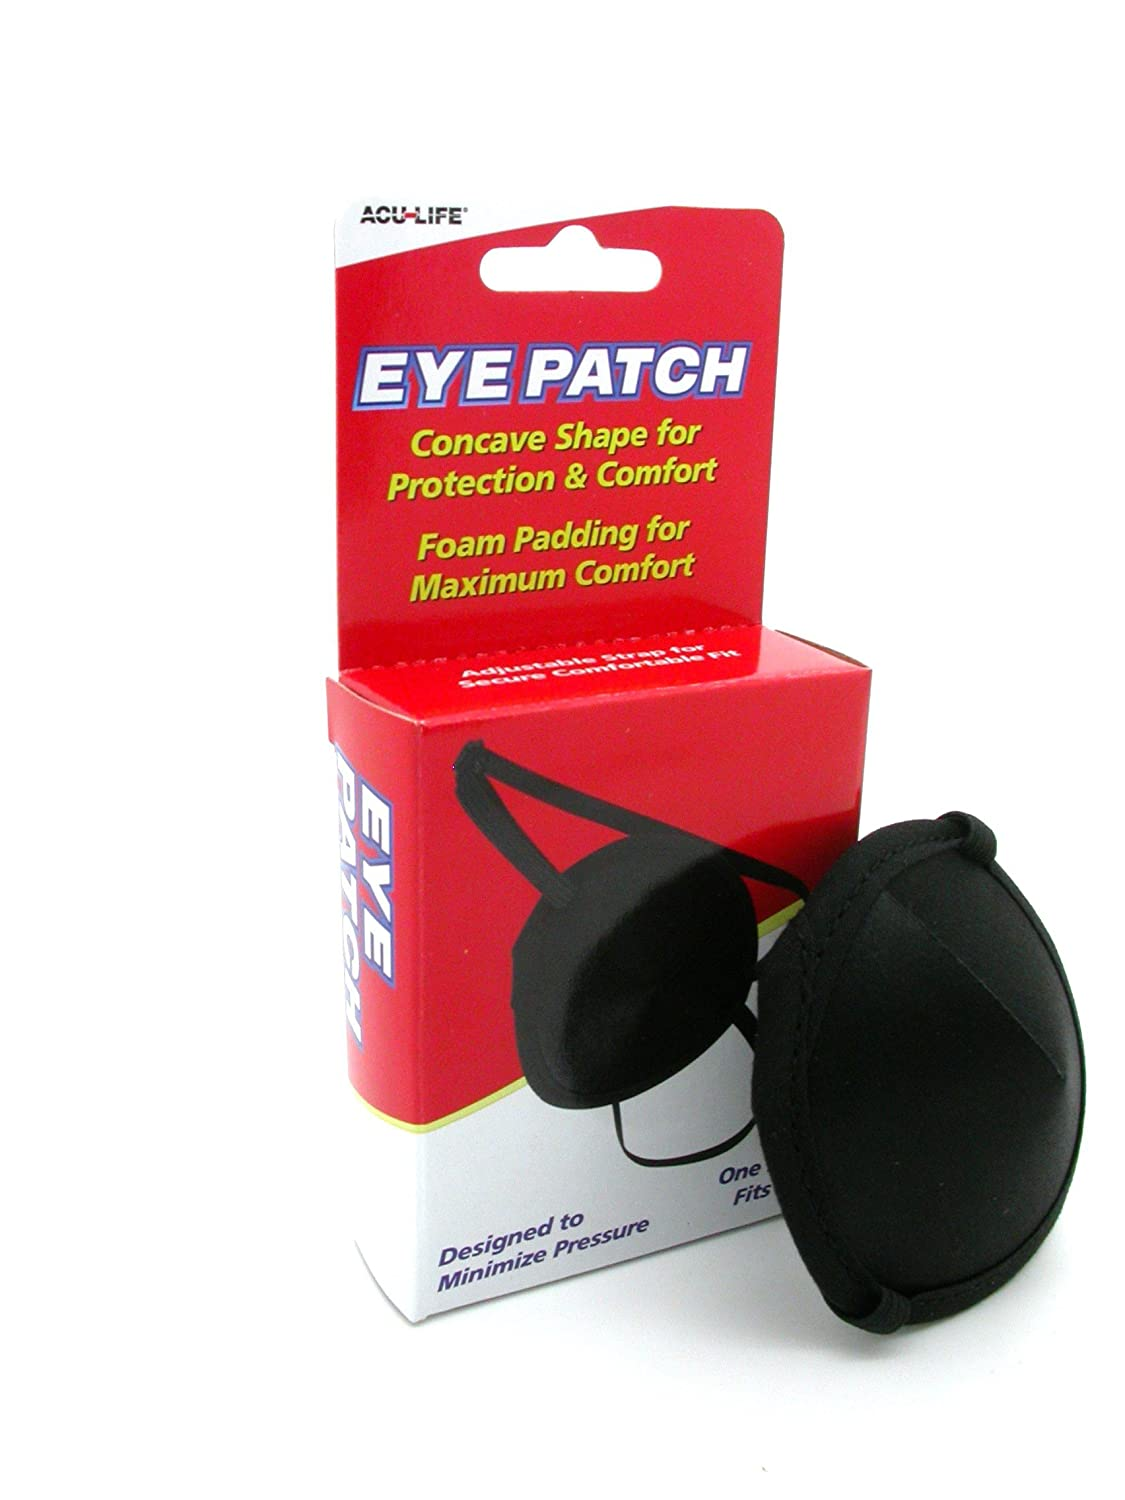 Aculife Protective Concave Eyepatch with Foam Padding HealthCentre 400013